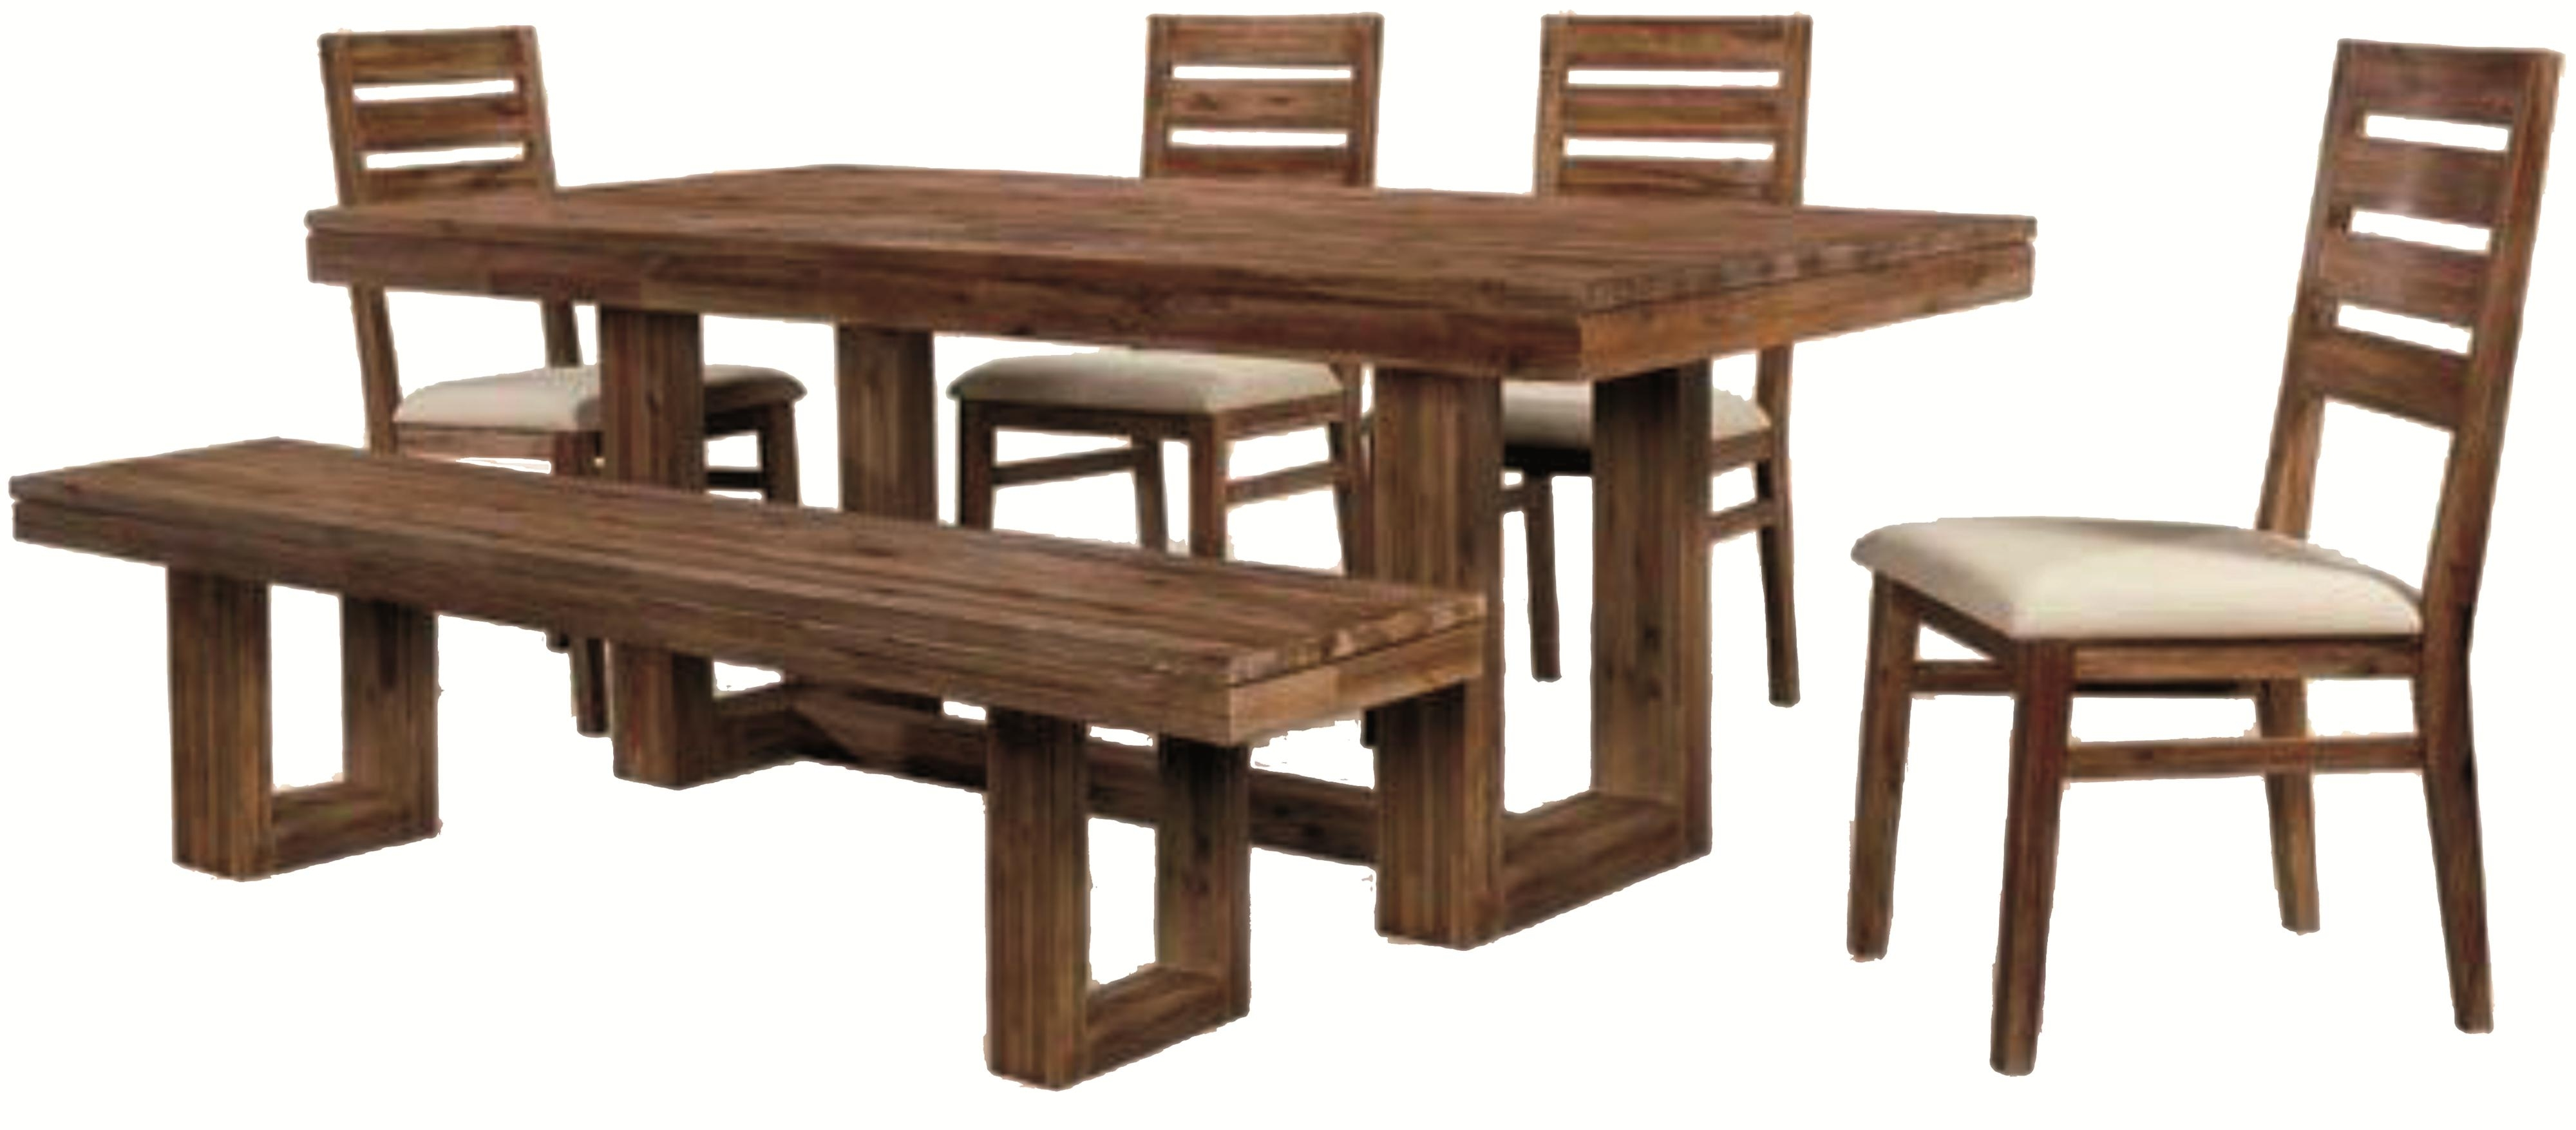 Parquet 6 Piece Dining Sets Intended For Current Six Piece Modern Rustic Rectangular Trestle Table With Ladderback (View 9 of 25)